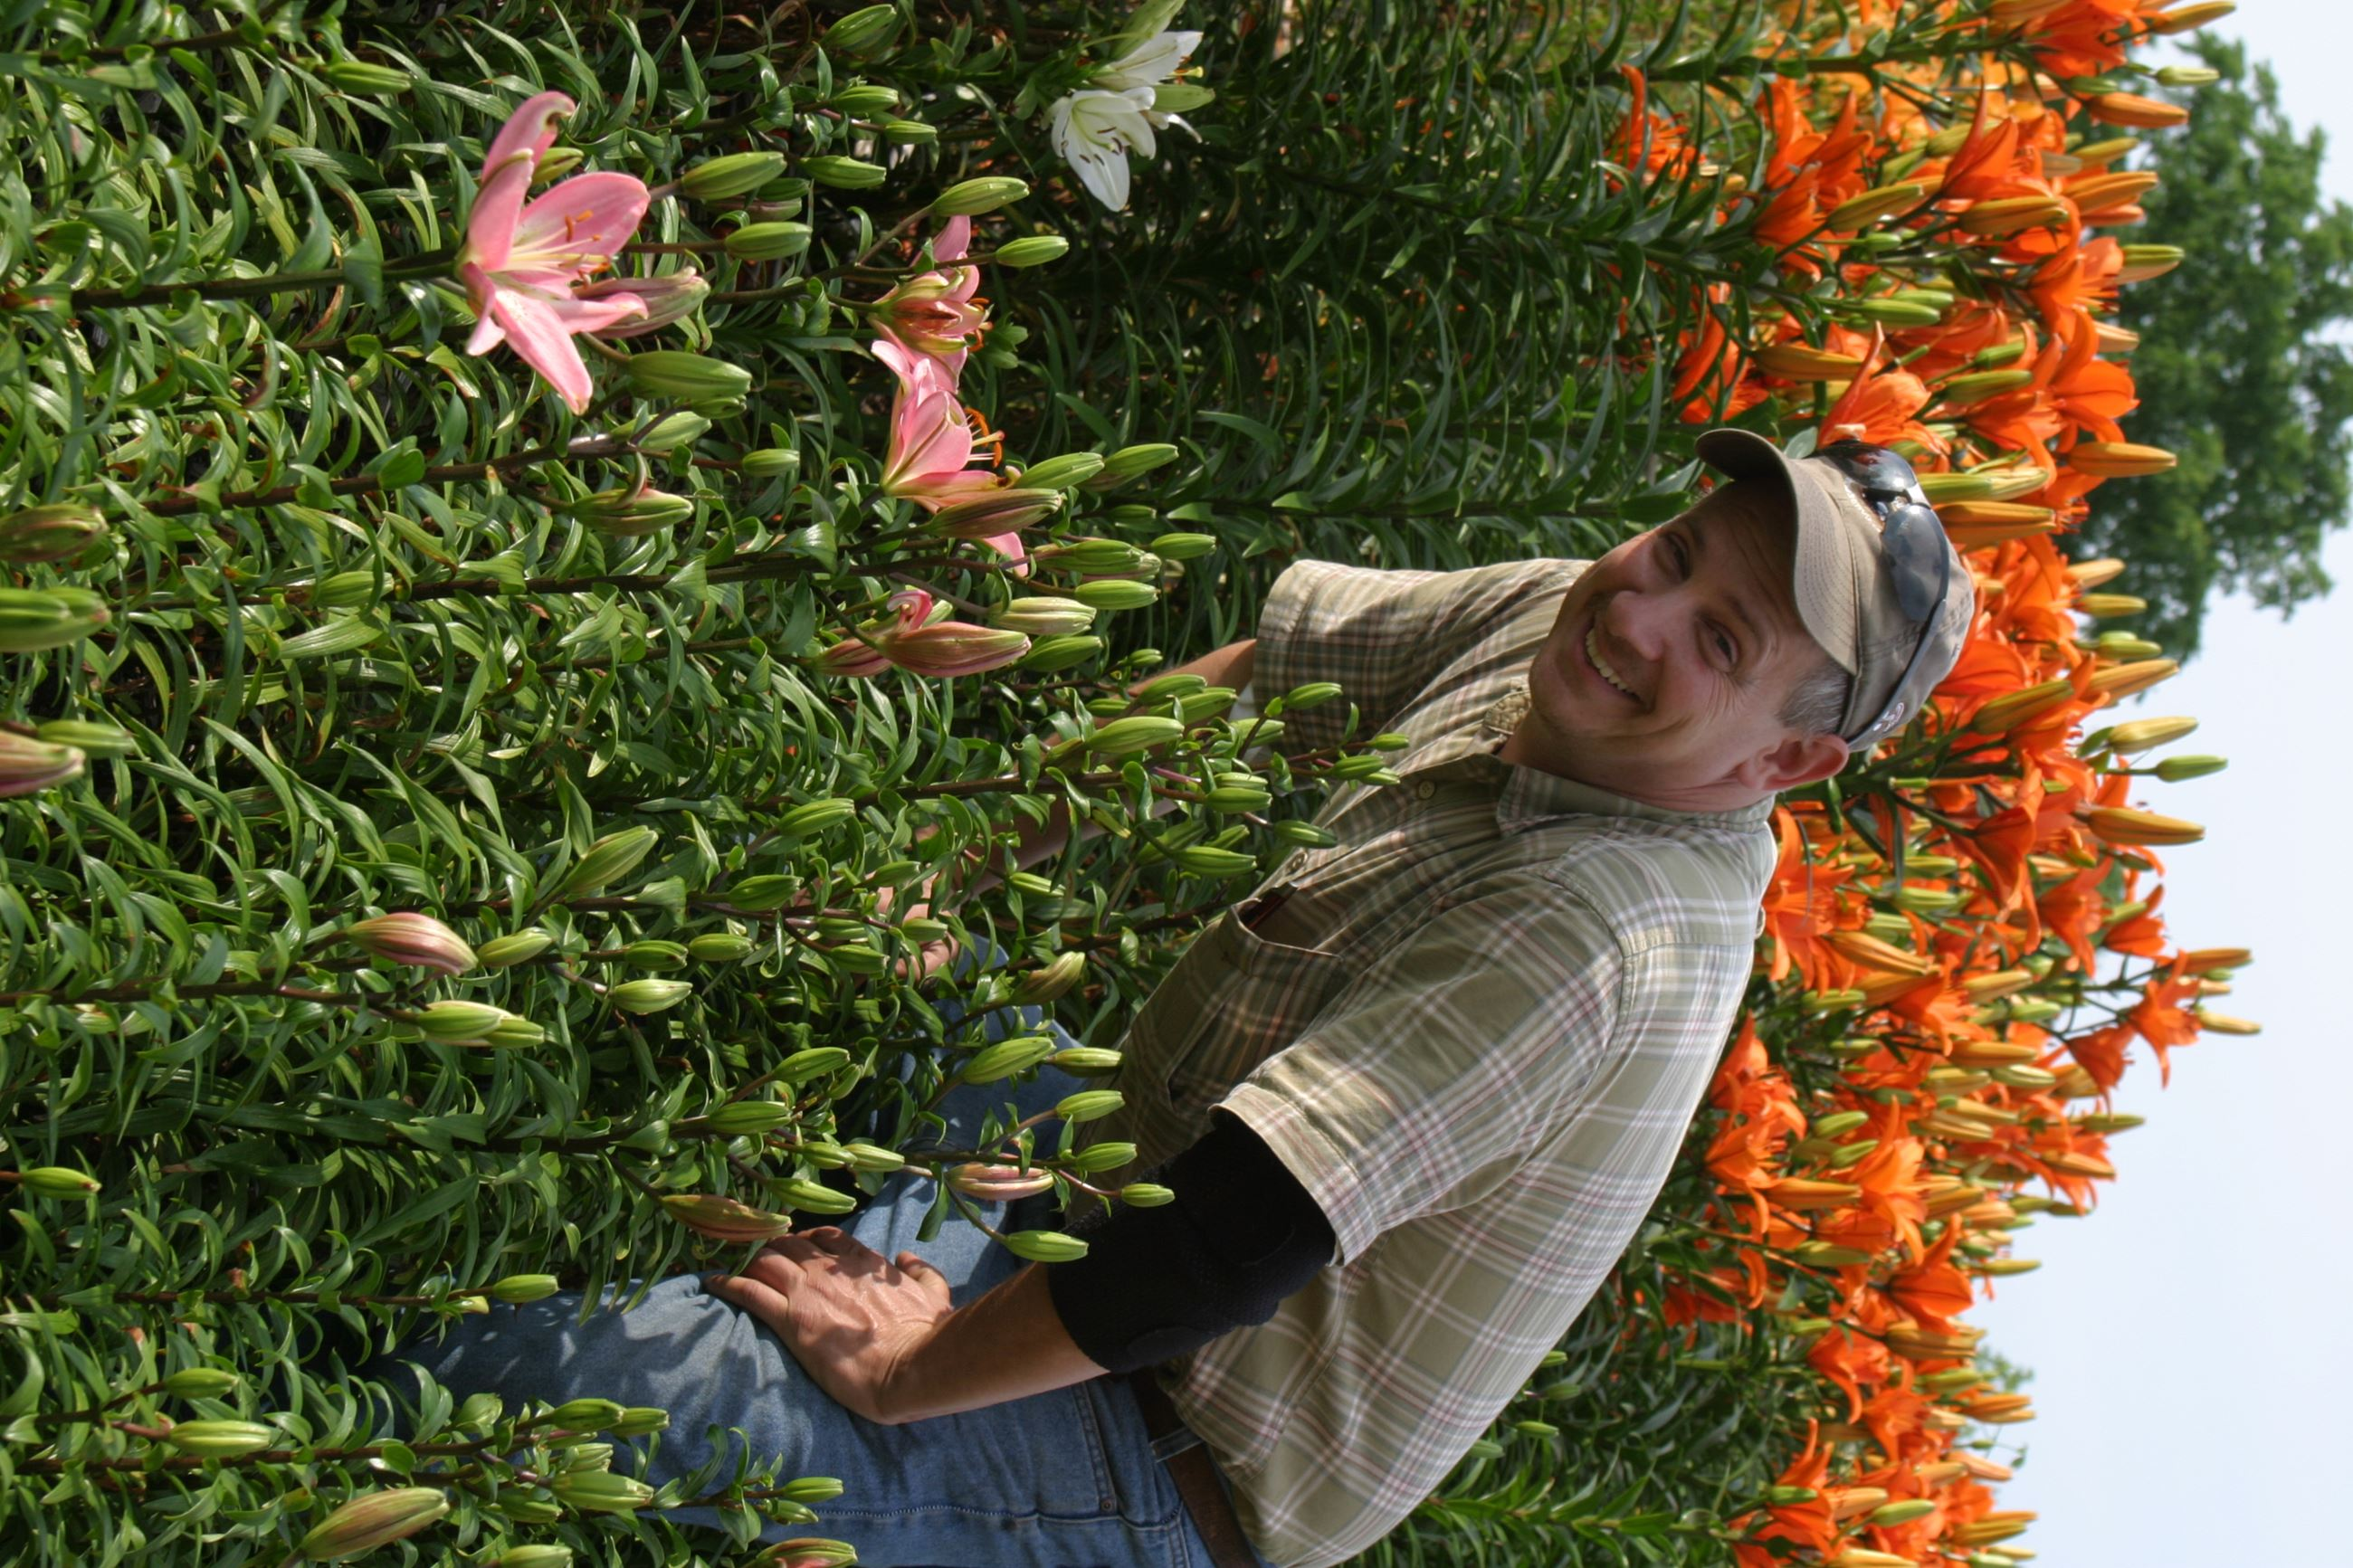 Man Standing in the Flowers